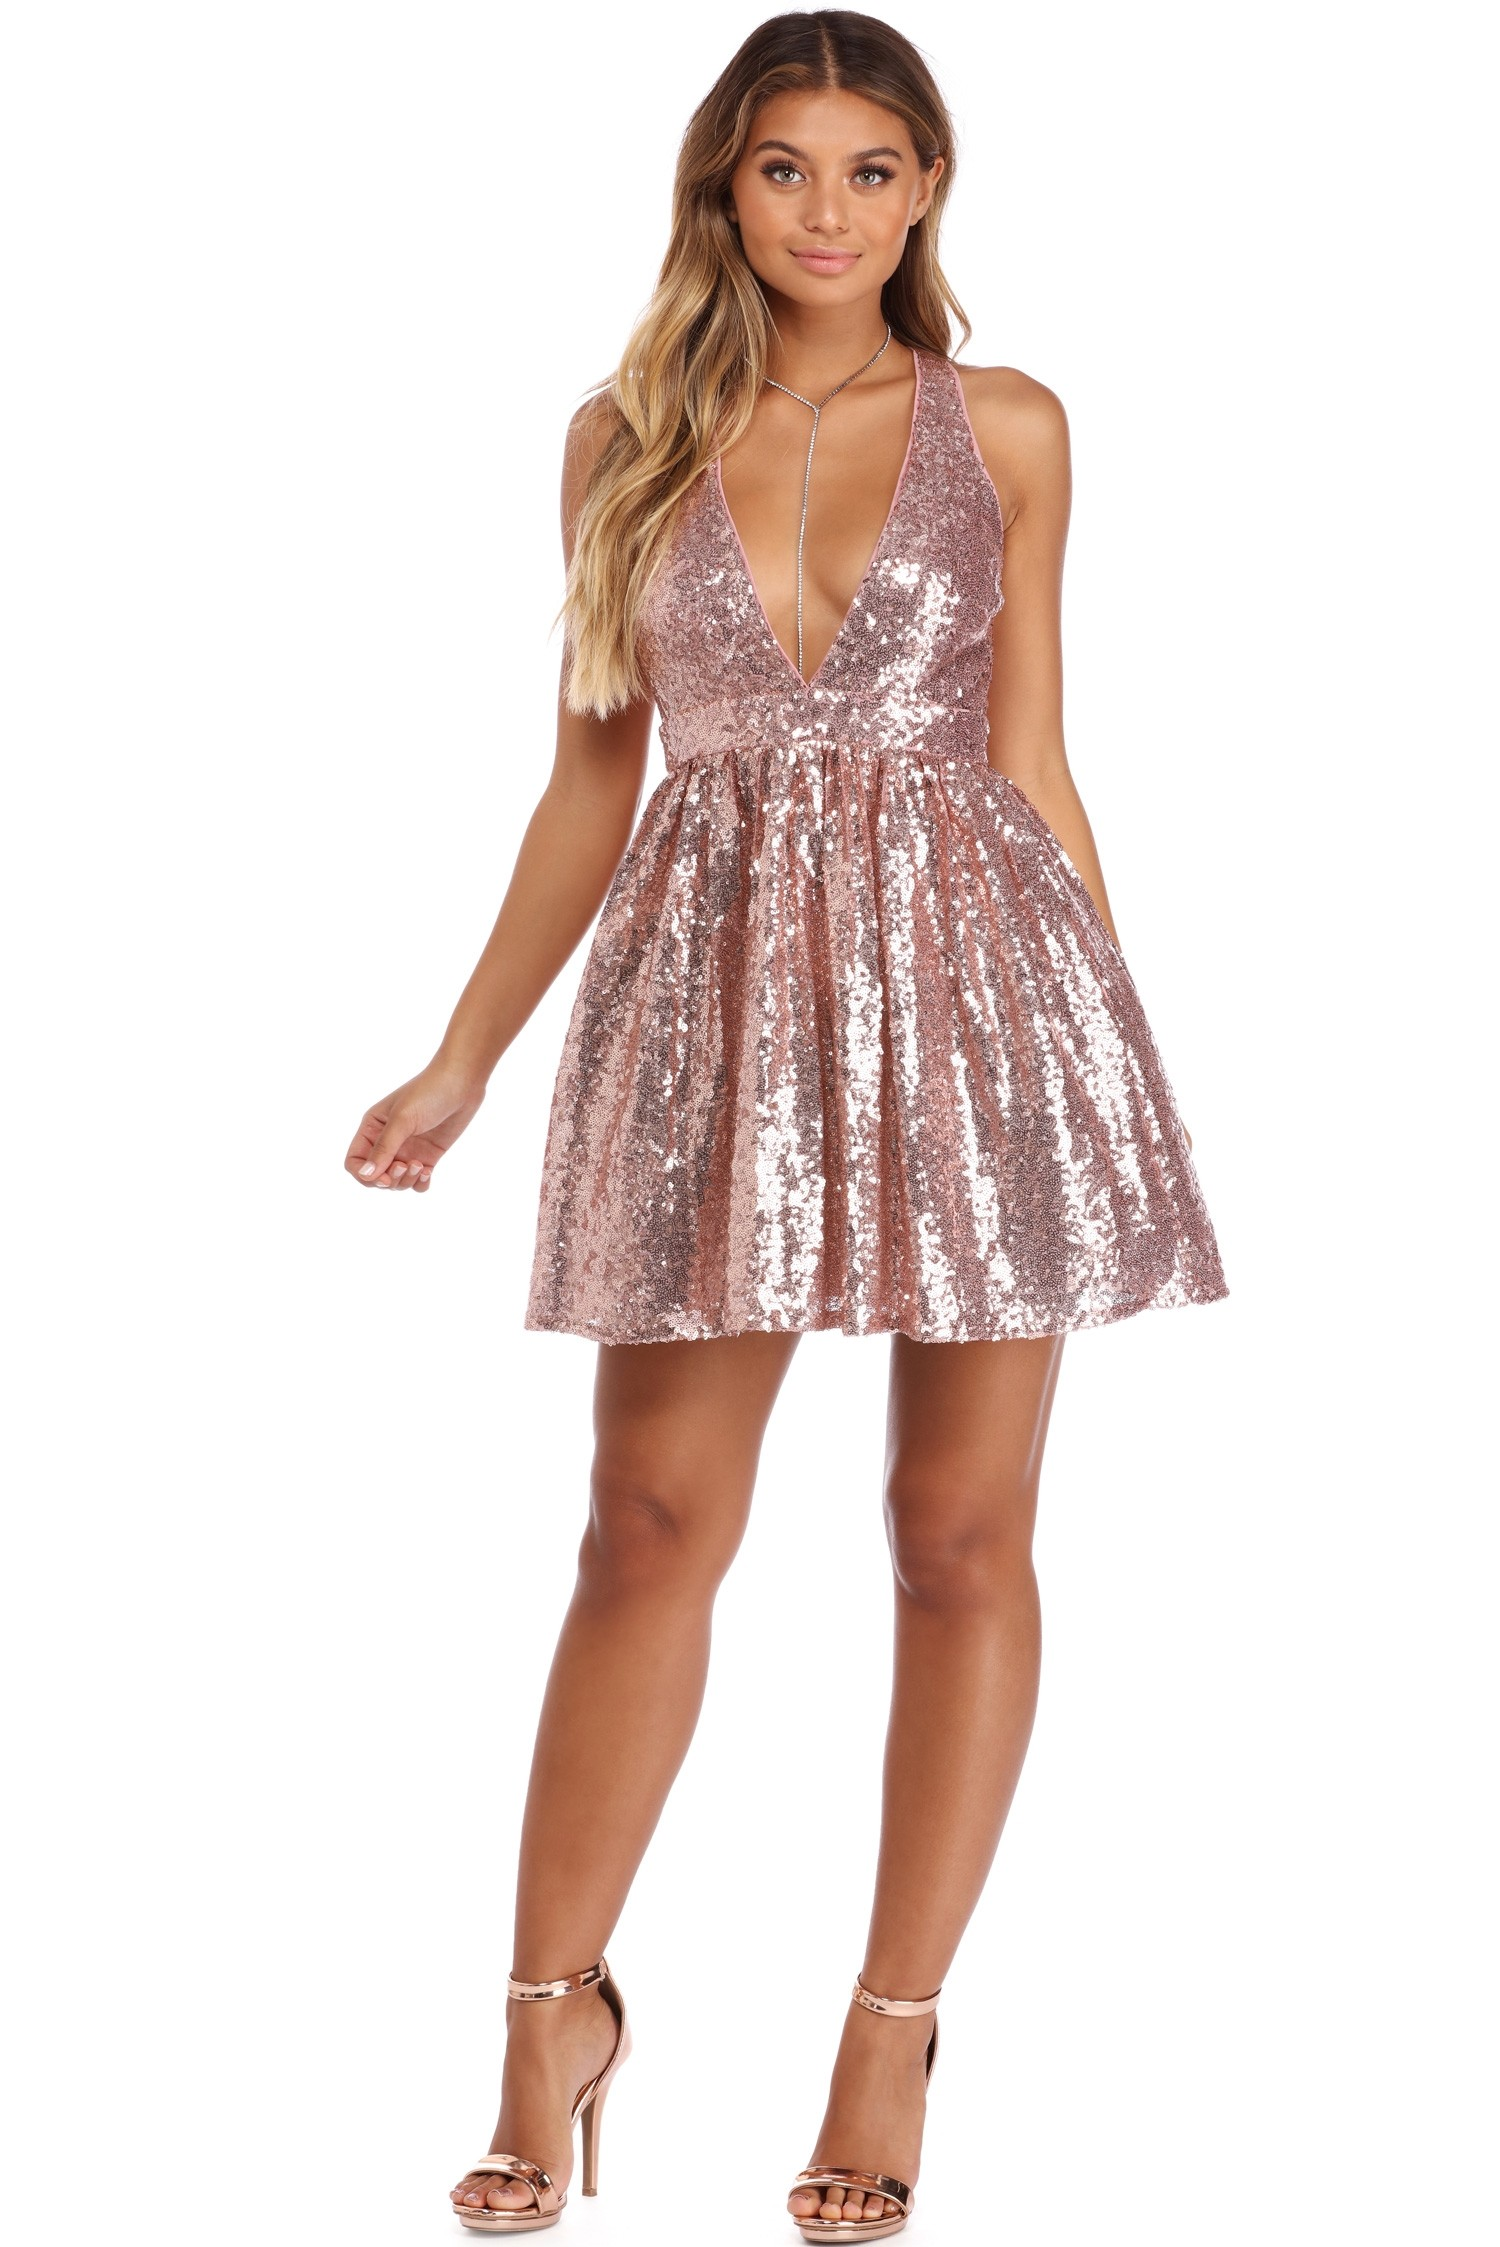 Sequin Party Dresses L9UHcH5d